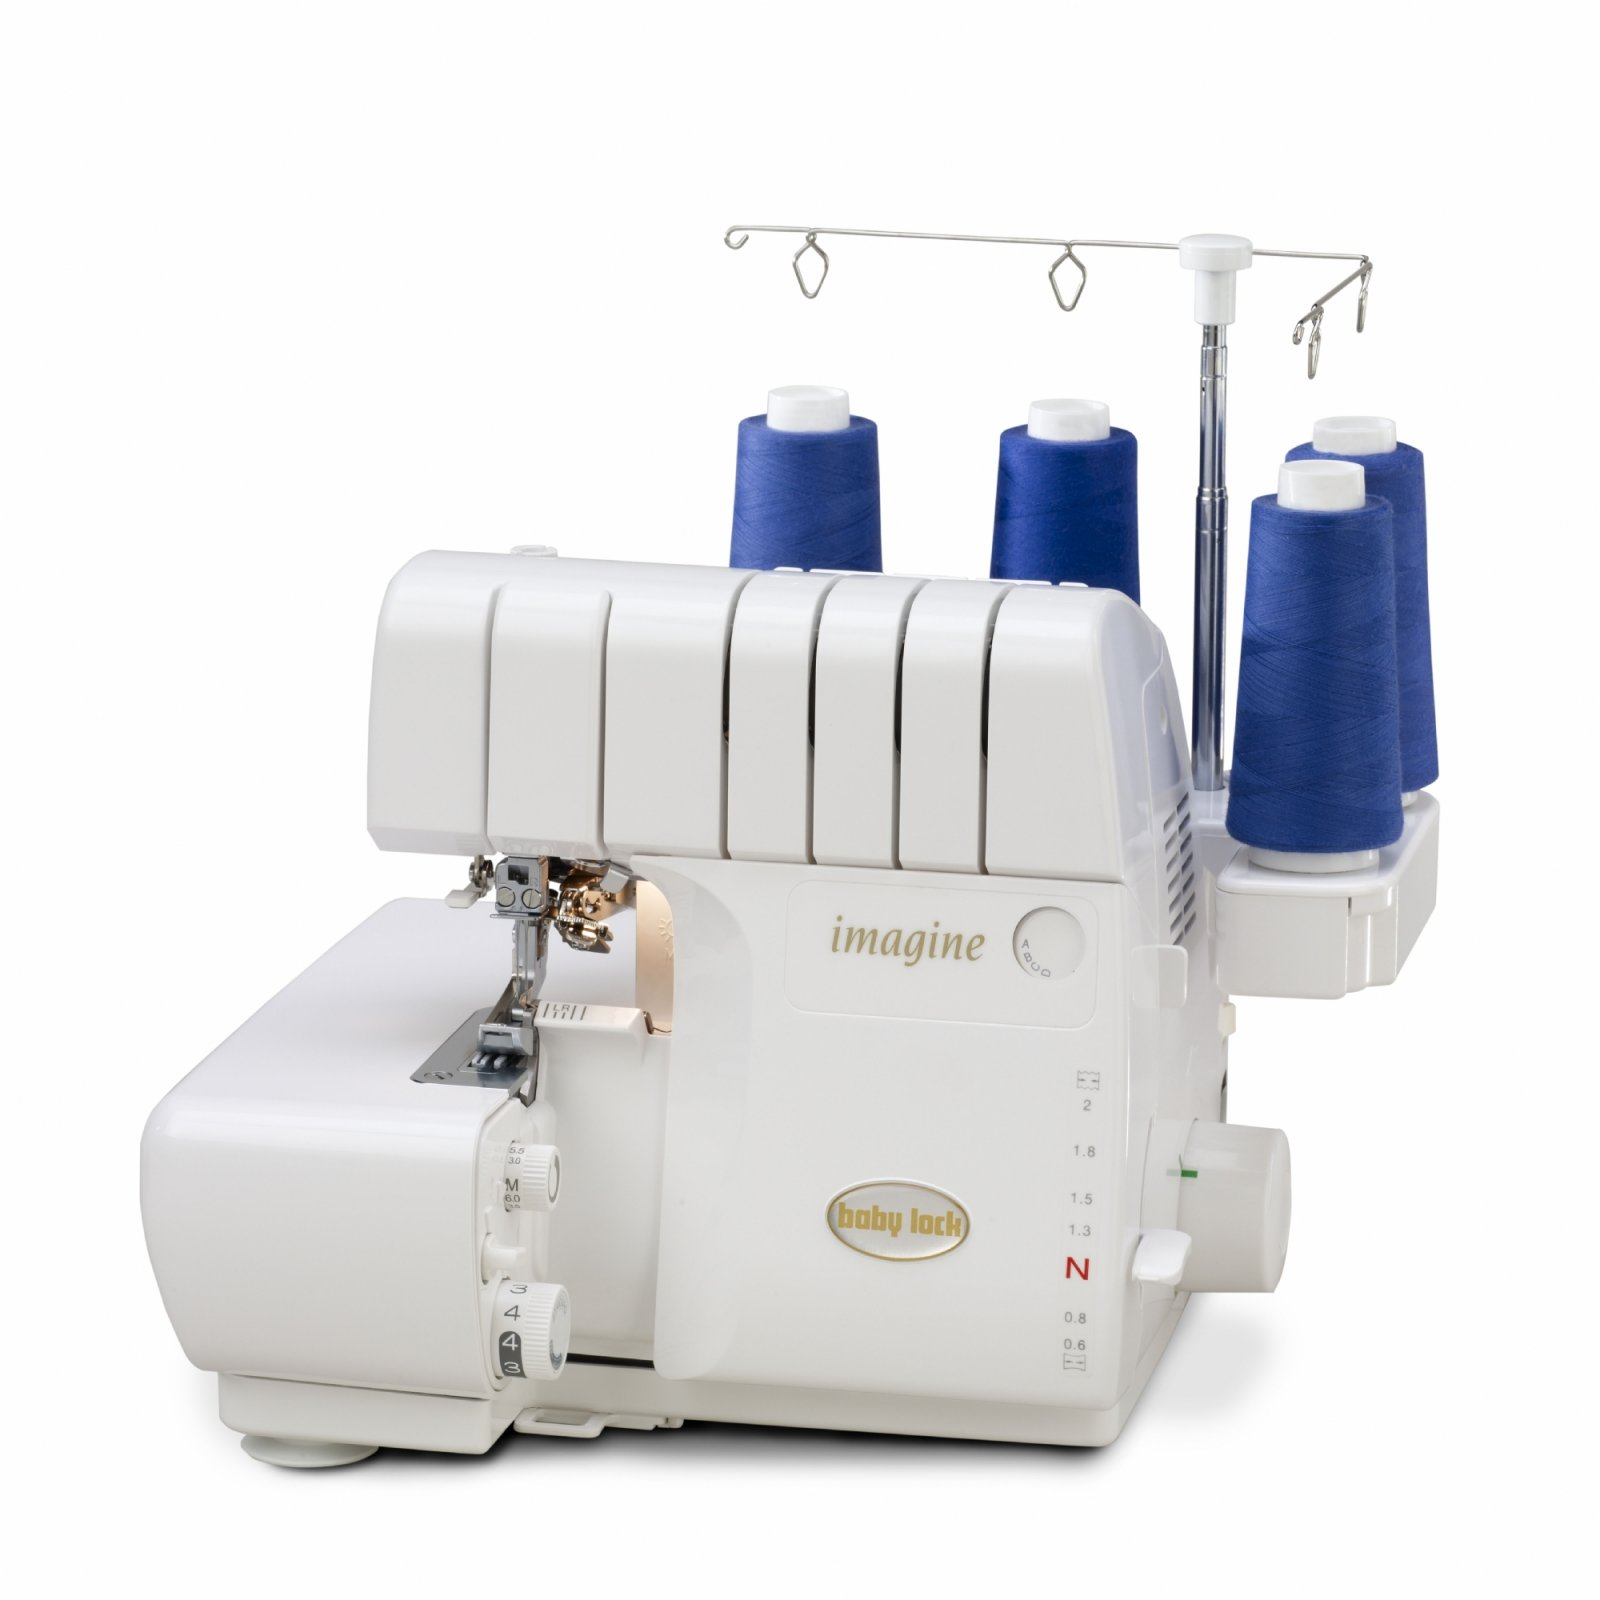 Imagine Serger